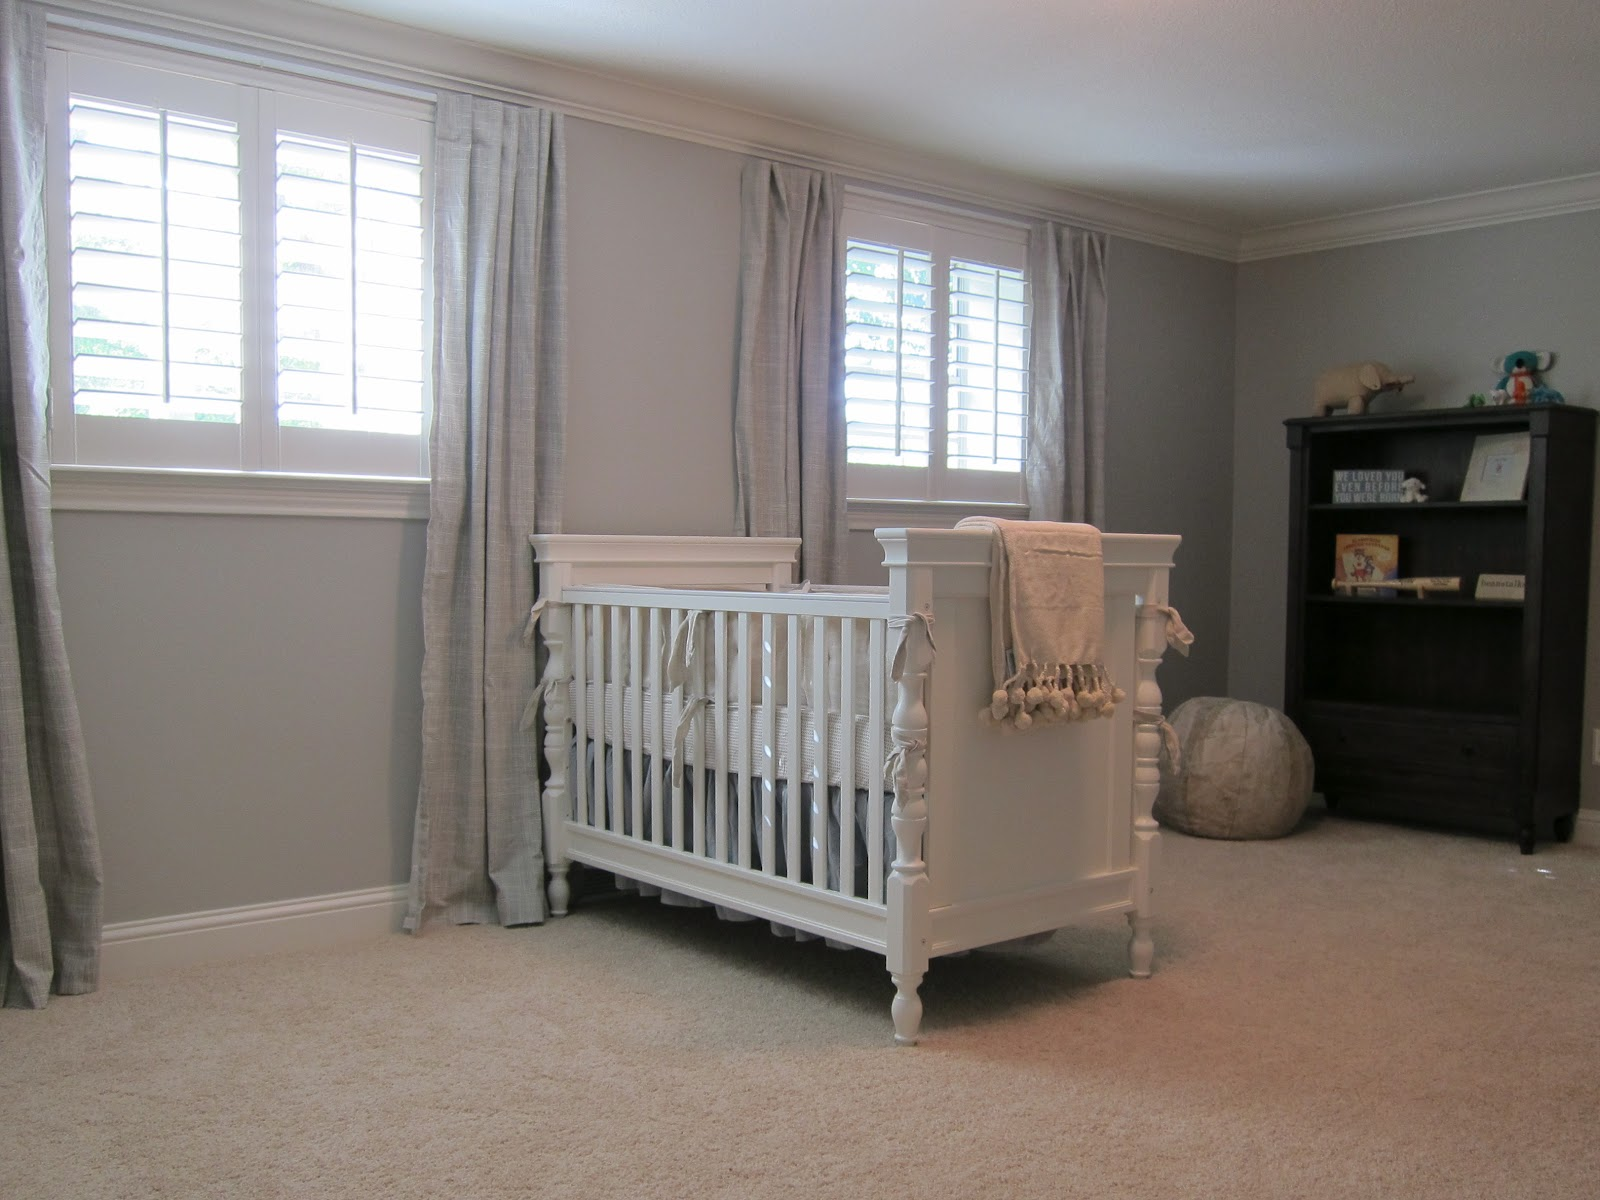 Best Nursery Collections with Restoration Hardware Cribs Design: Restoration Hardware Baby Outlet | Restoration Hardware Cribs | Consumer Reports Baby Cribs